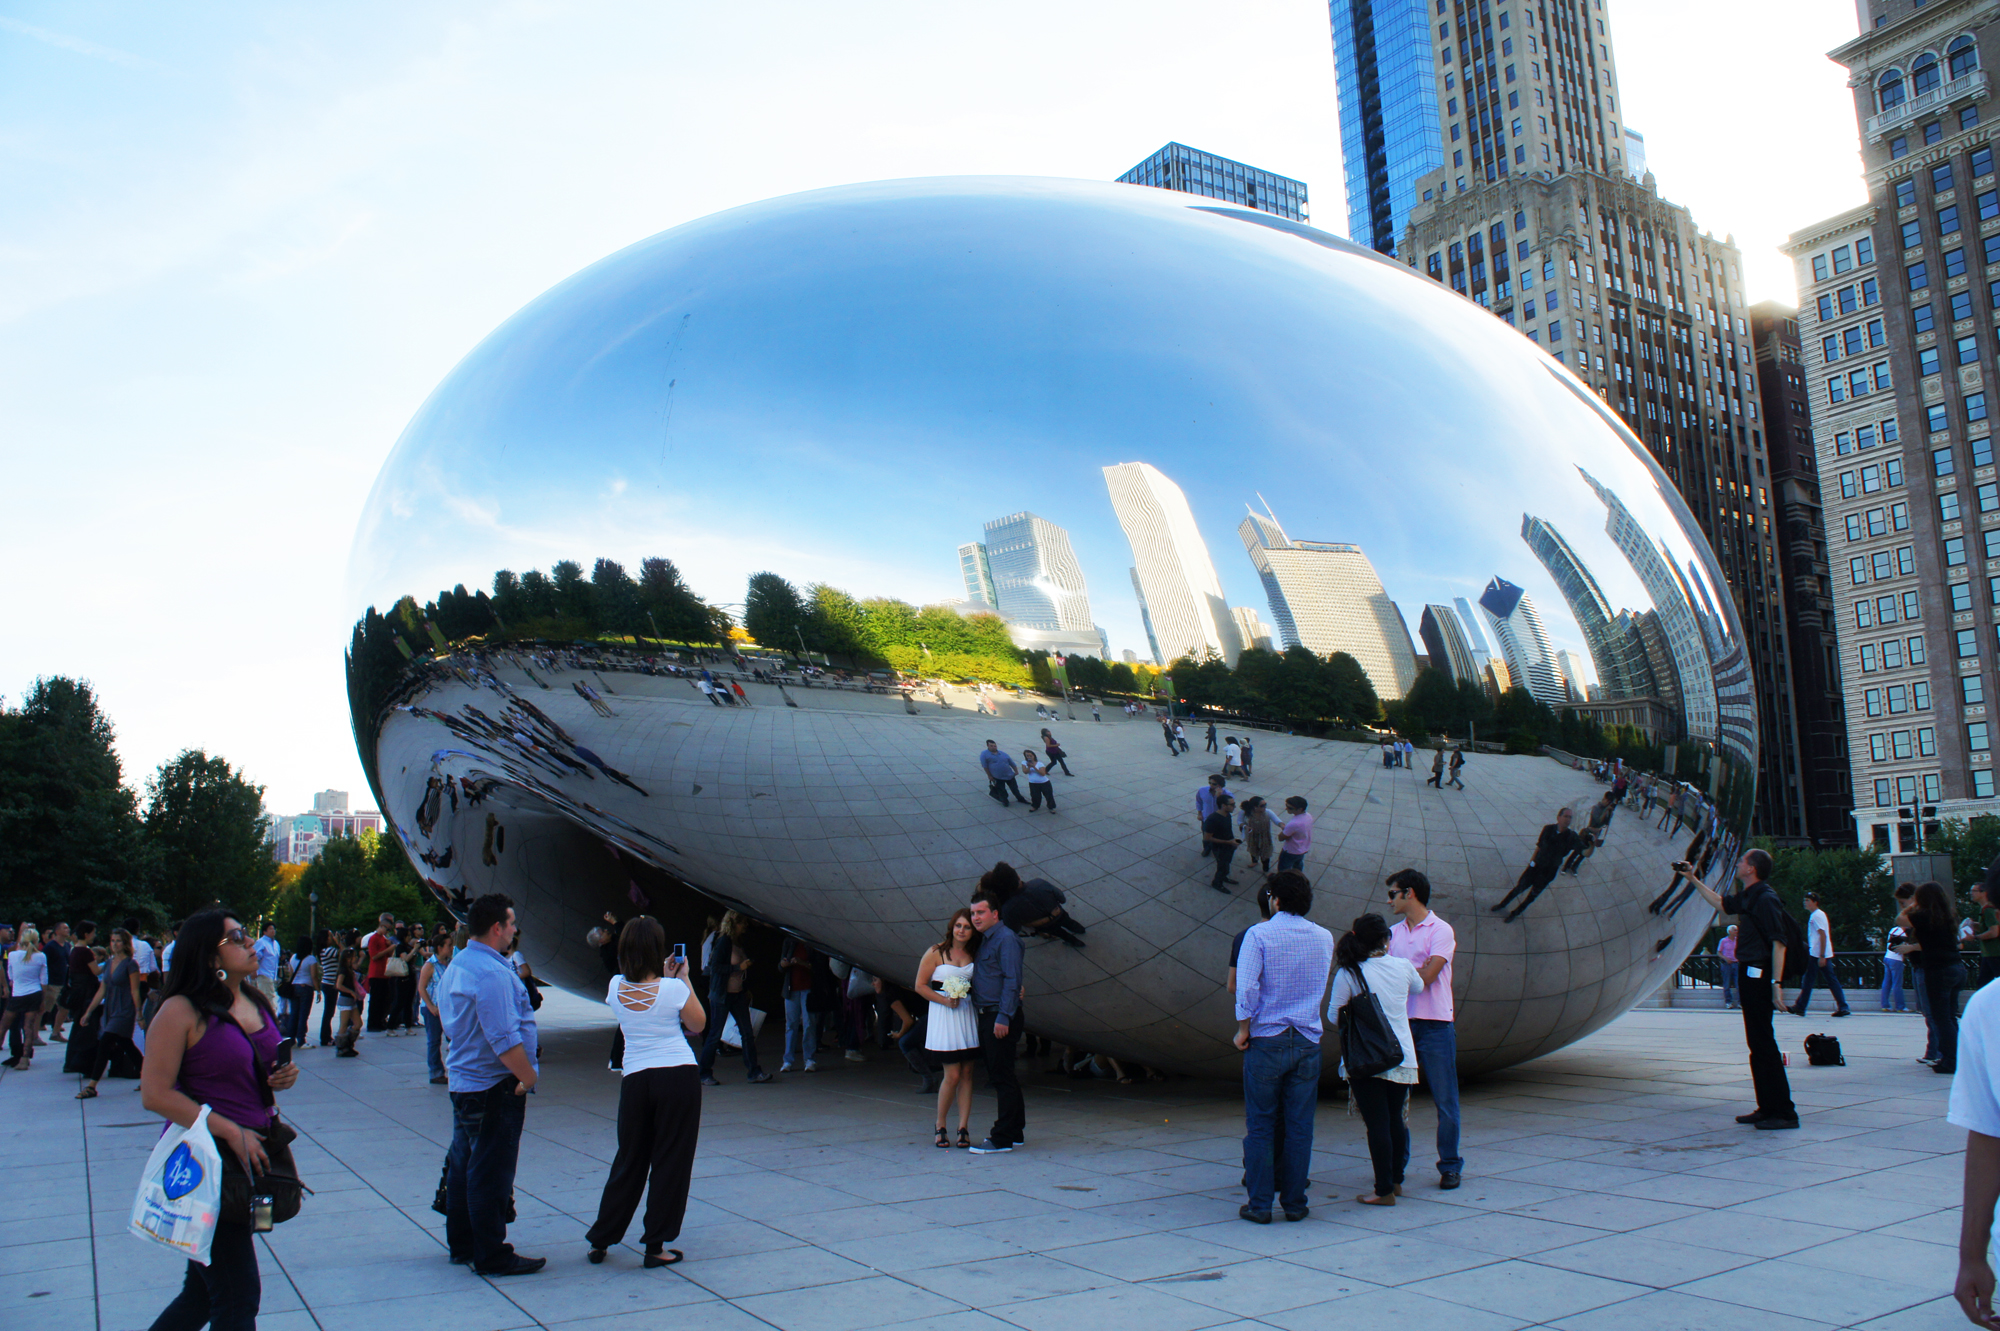 Cloud Gate, Millennium Park. Image courtesy of Laura Schmahmann.